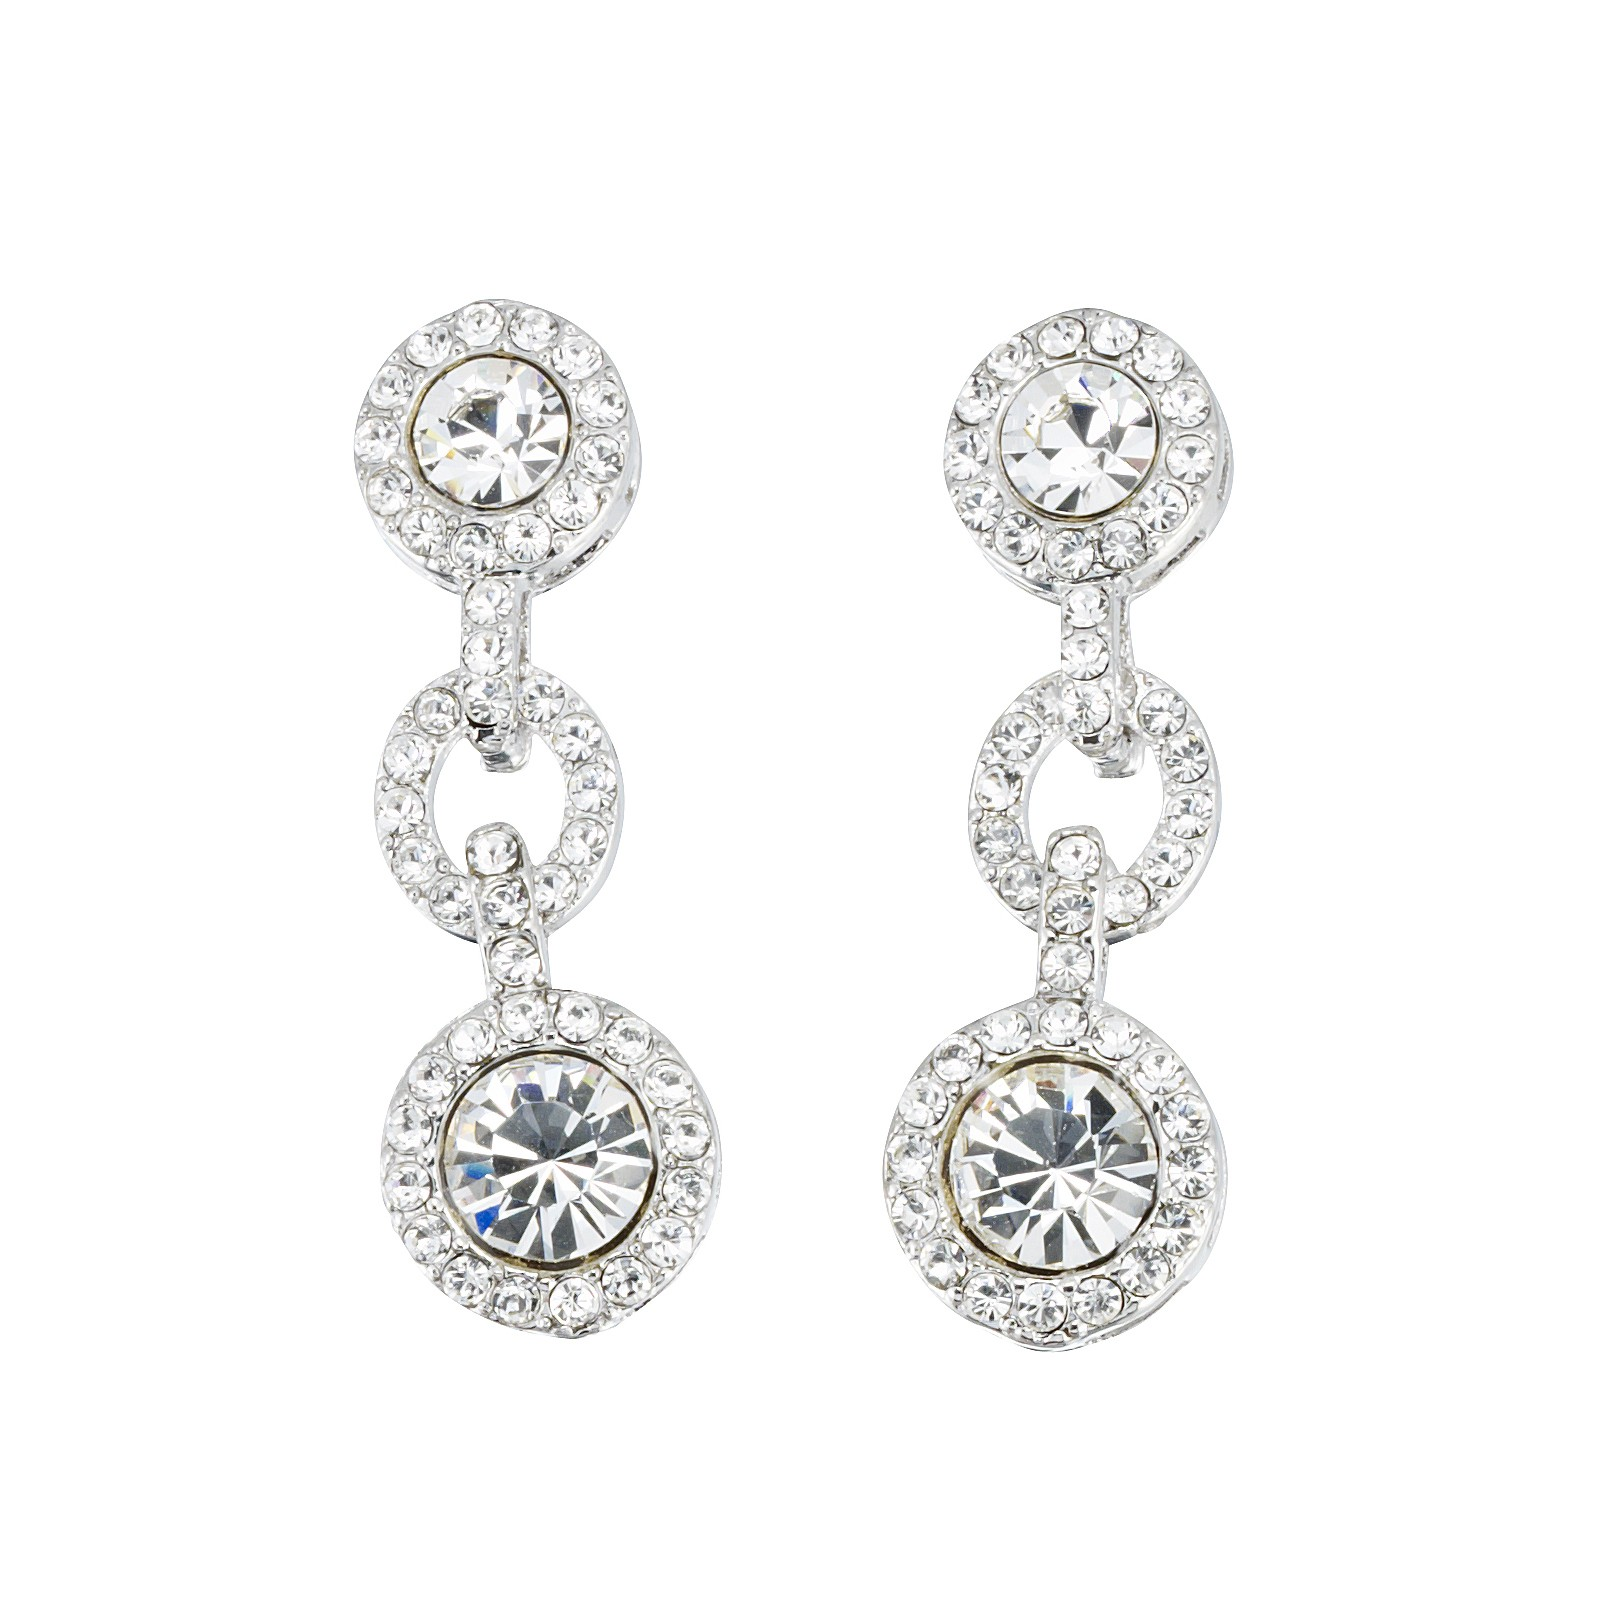 f338130fc91e7e Gemini London Jewellery s Crystal Link Earrings - Made with Clear White  Swarovski Crystals